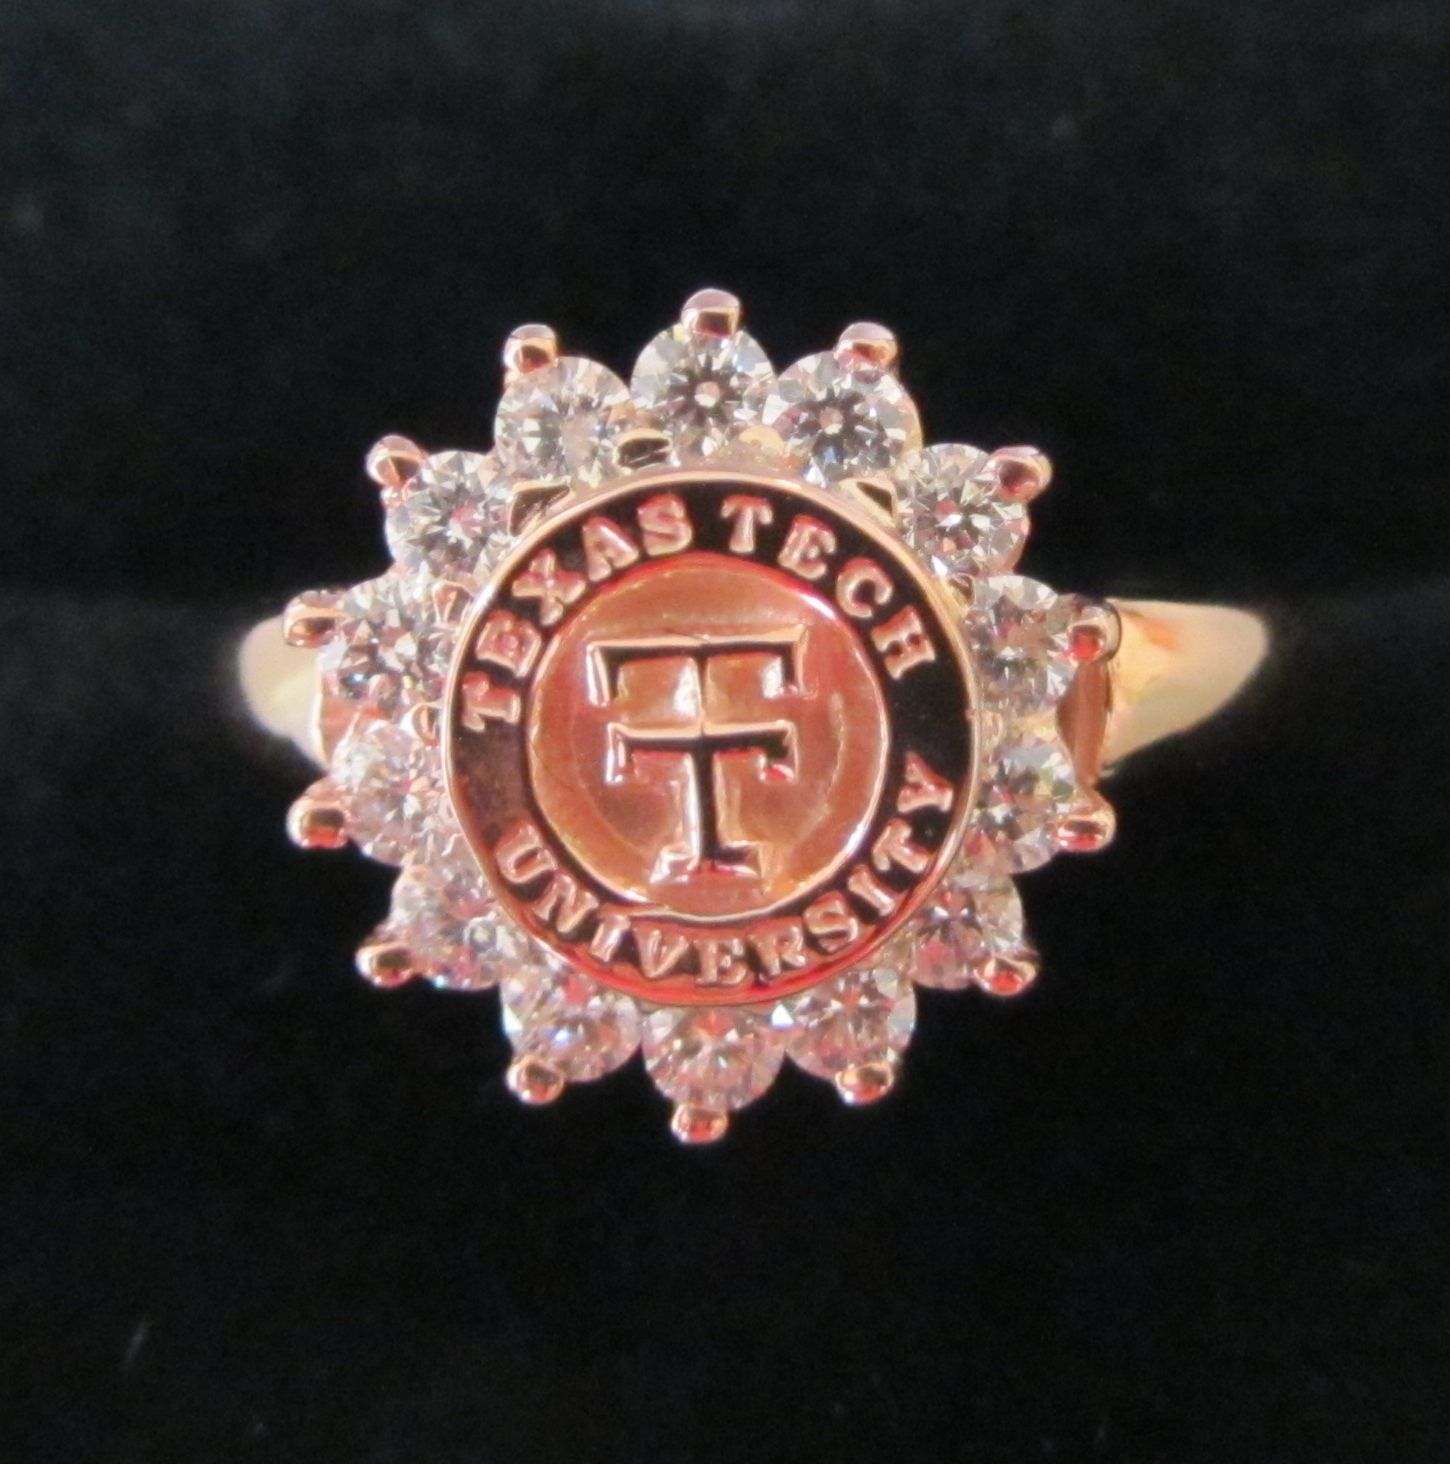 Texas Tech Jewelry Diamontrigue Jewelry: Welcome The Newest Member Of Our Beautiful Texas Tech